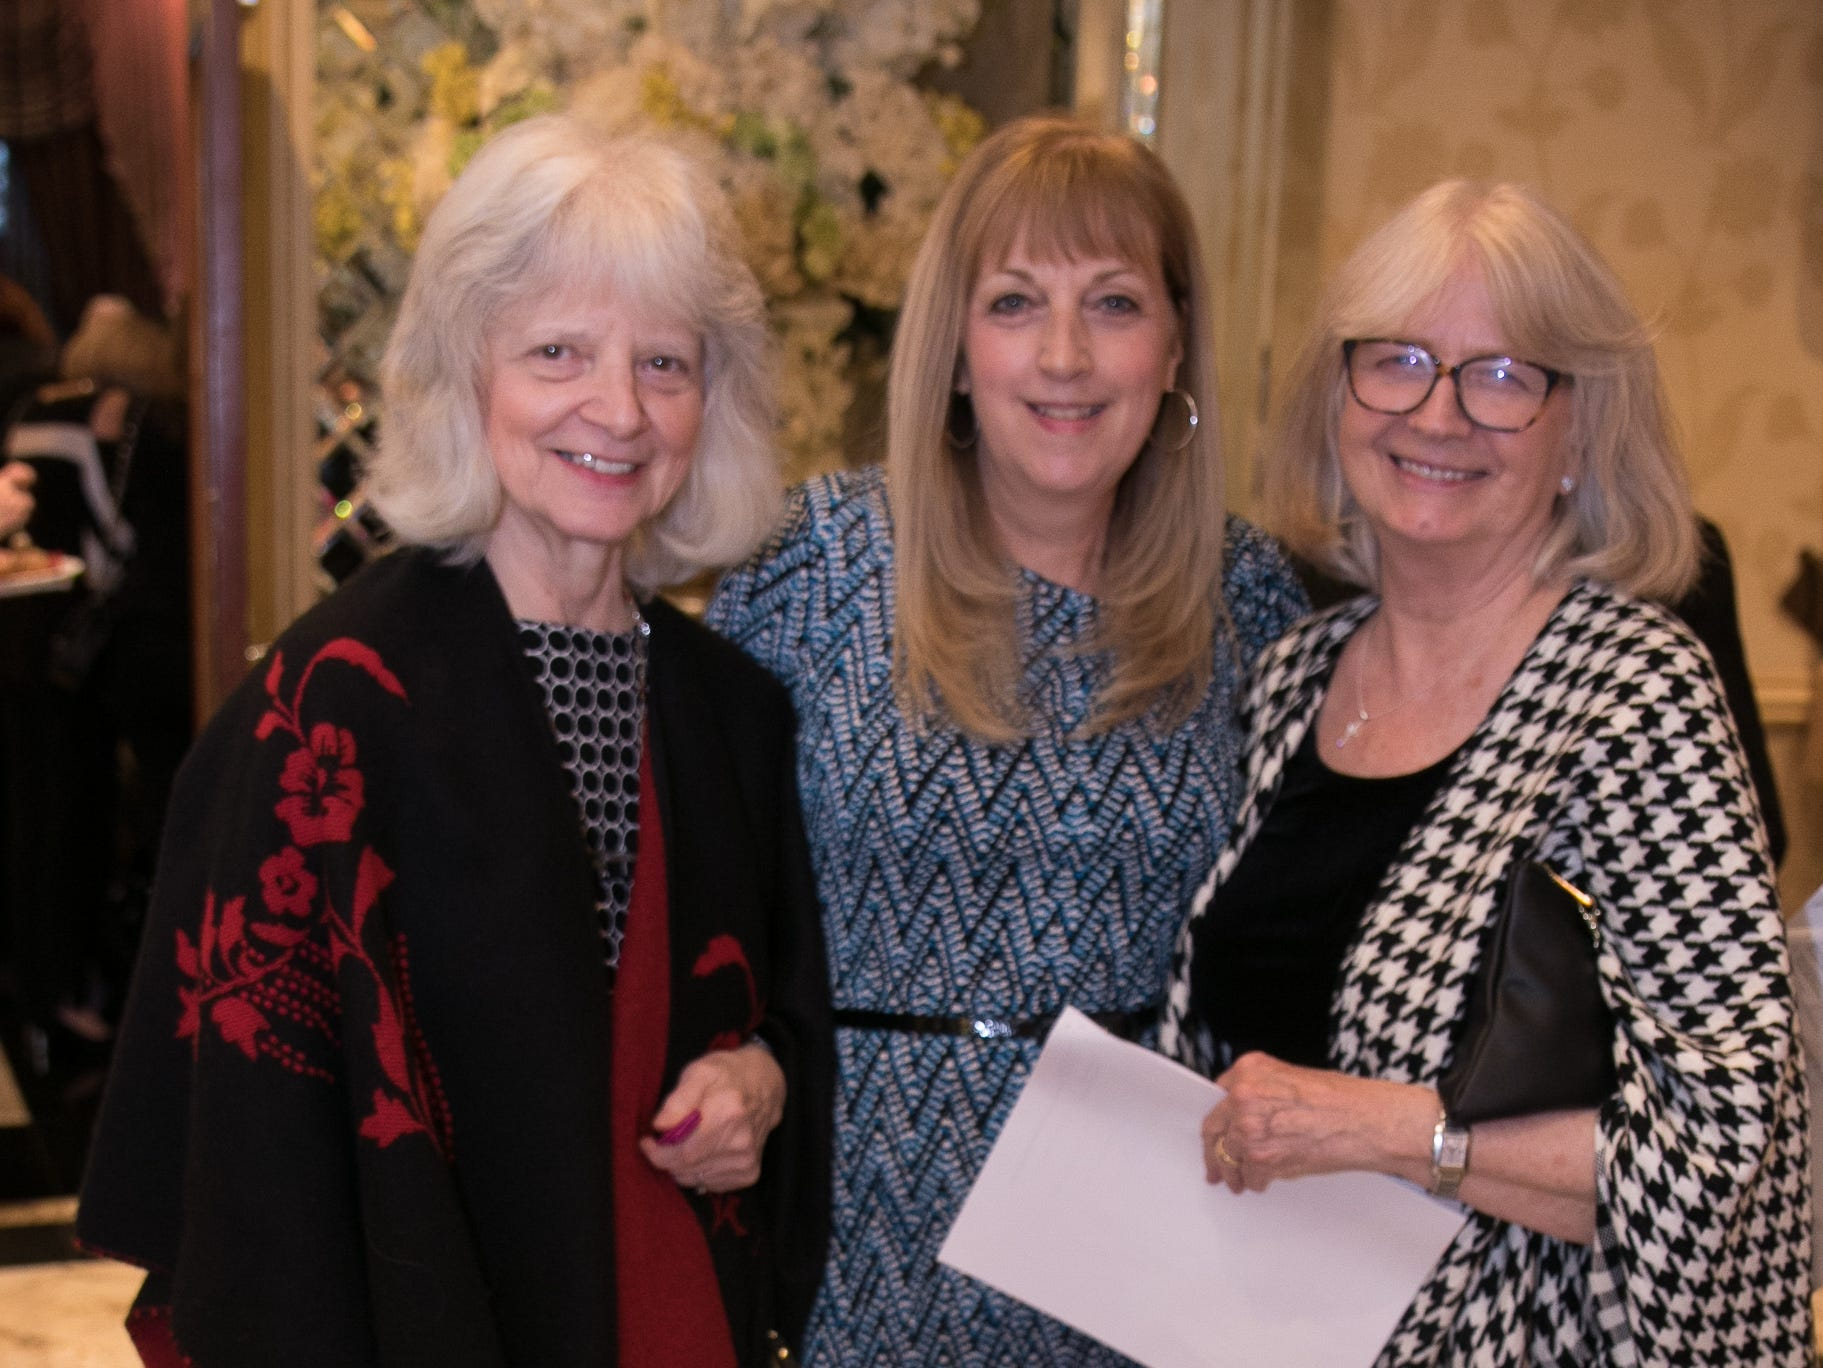 Helen Carroll, Annelie Foster, Diana Wunschel. New Hope, a Pregnancy Resource Center, held their annual gala at Seasons in Washington Township. 04/05/2019